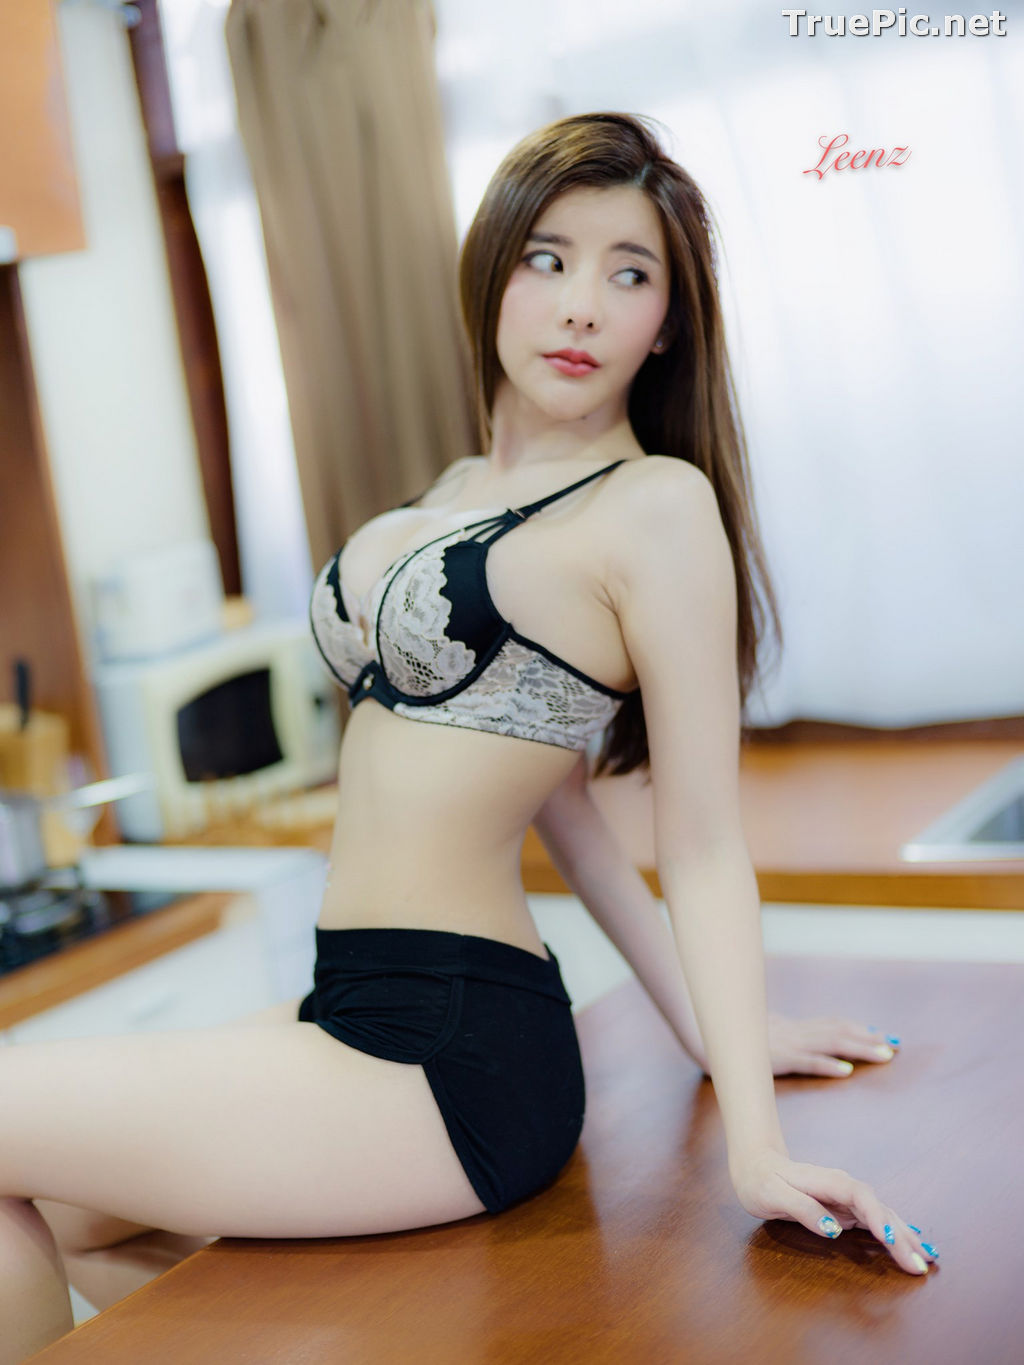 Image Thailand Model - Supitcha Boonkumphoung - Home Alone? Lingerie - TruePic.net - Picture-25